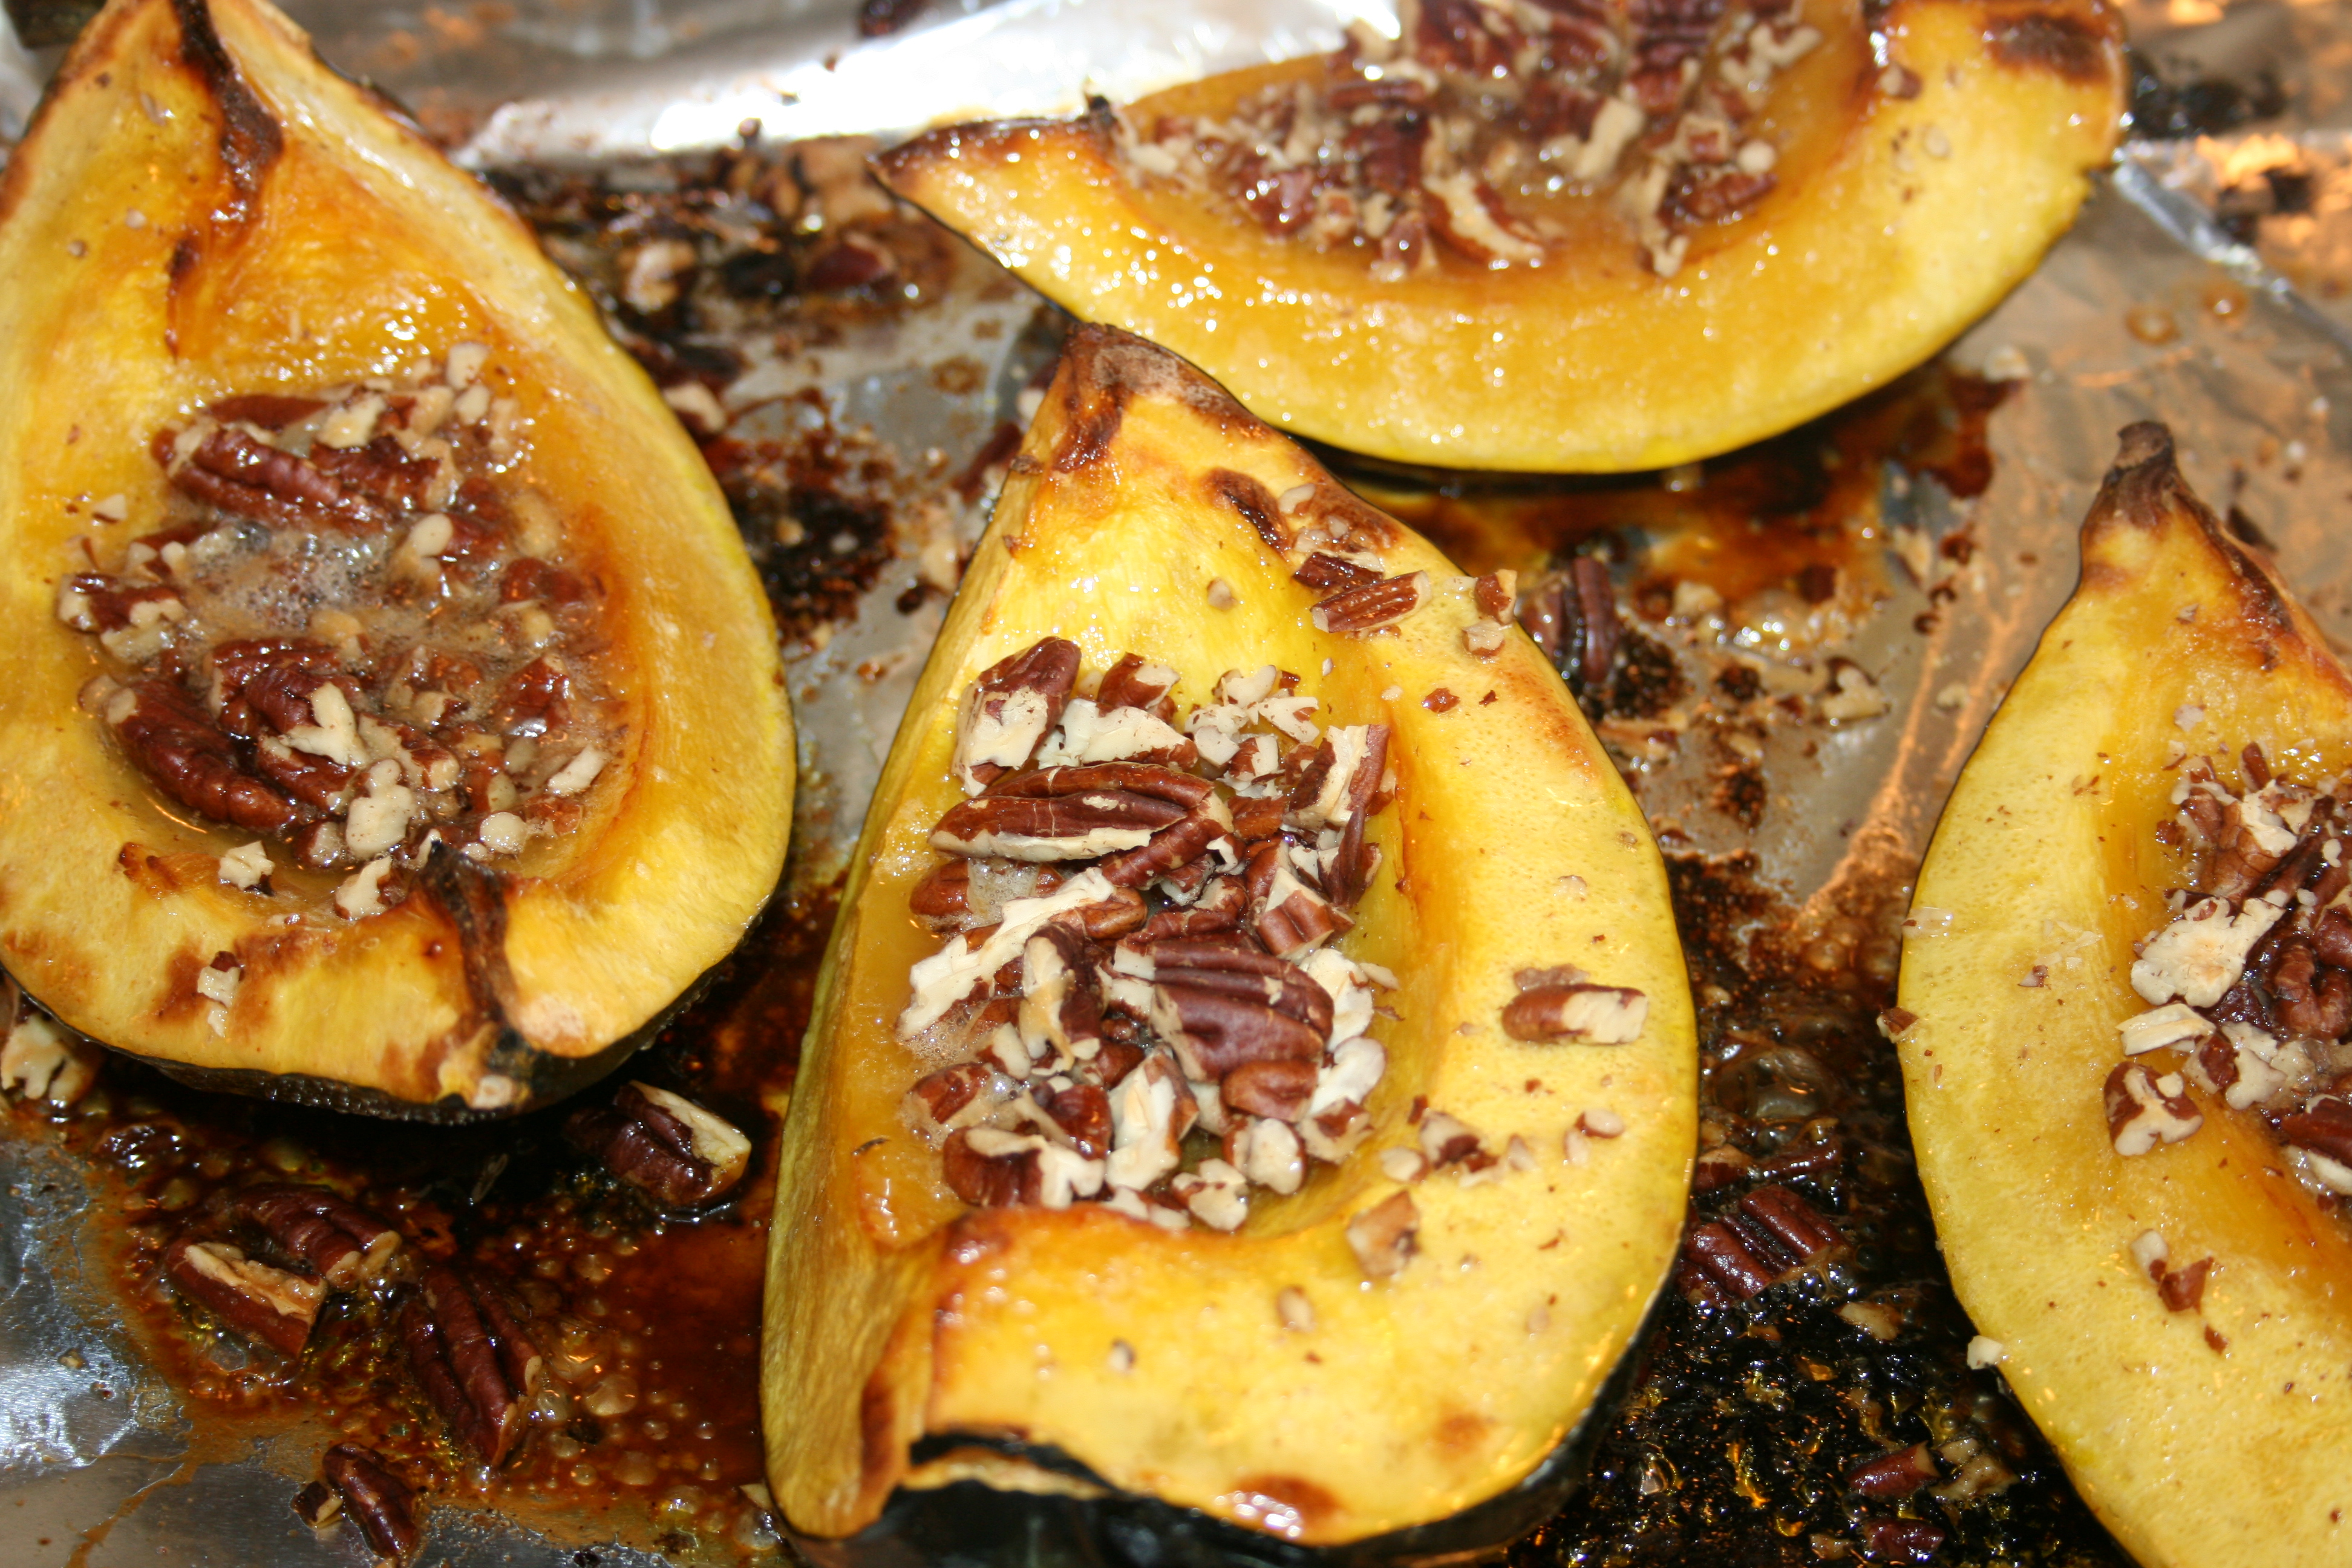 Roasted Acorn Squash with Glazed Pecans - Sydne George